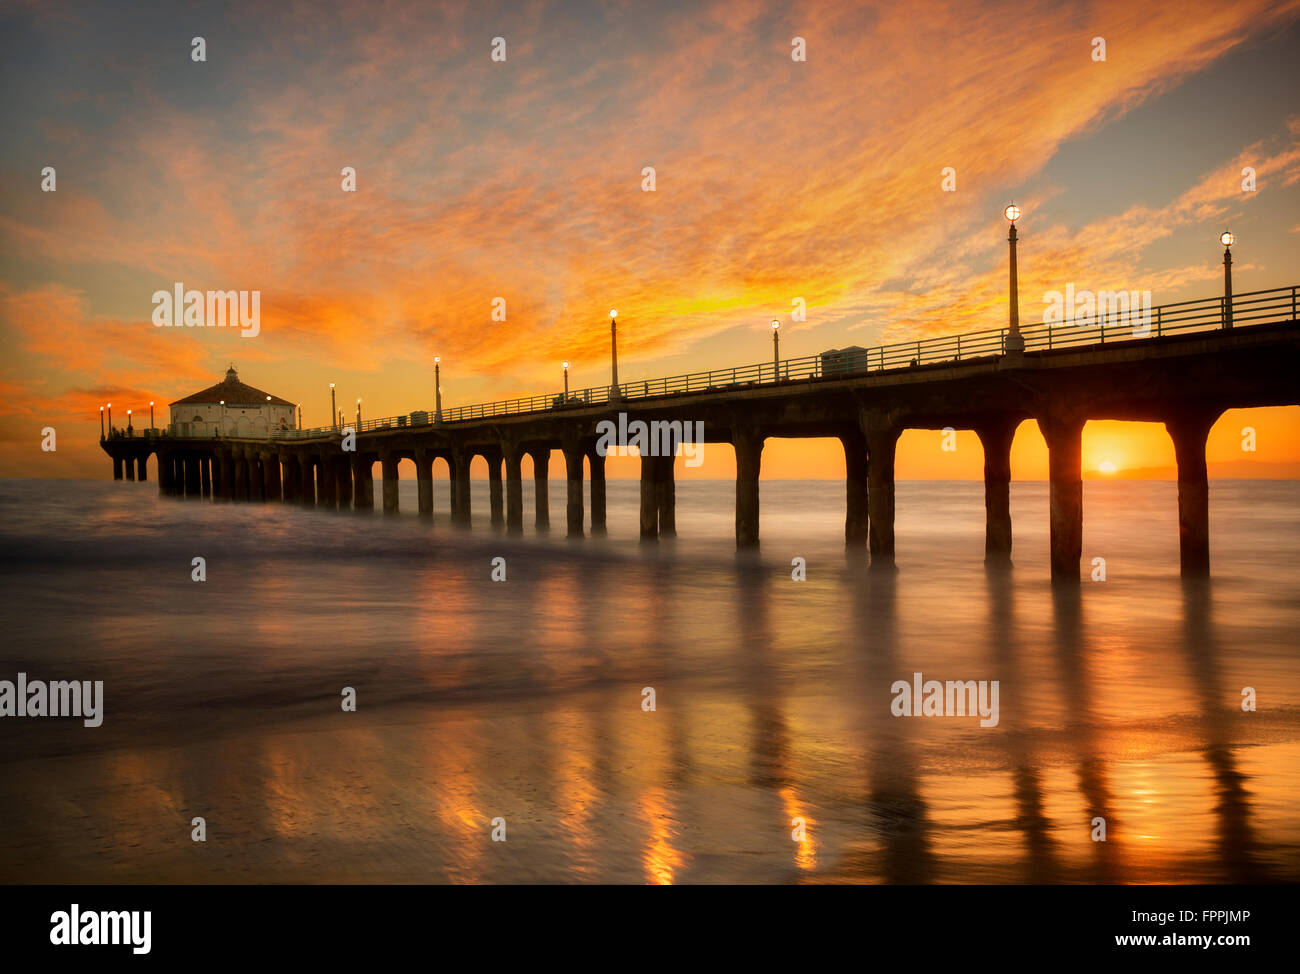 Manhattan Beach Pier at Sunset. Manhattan Beach, California - Stock Image